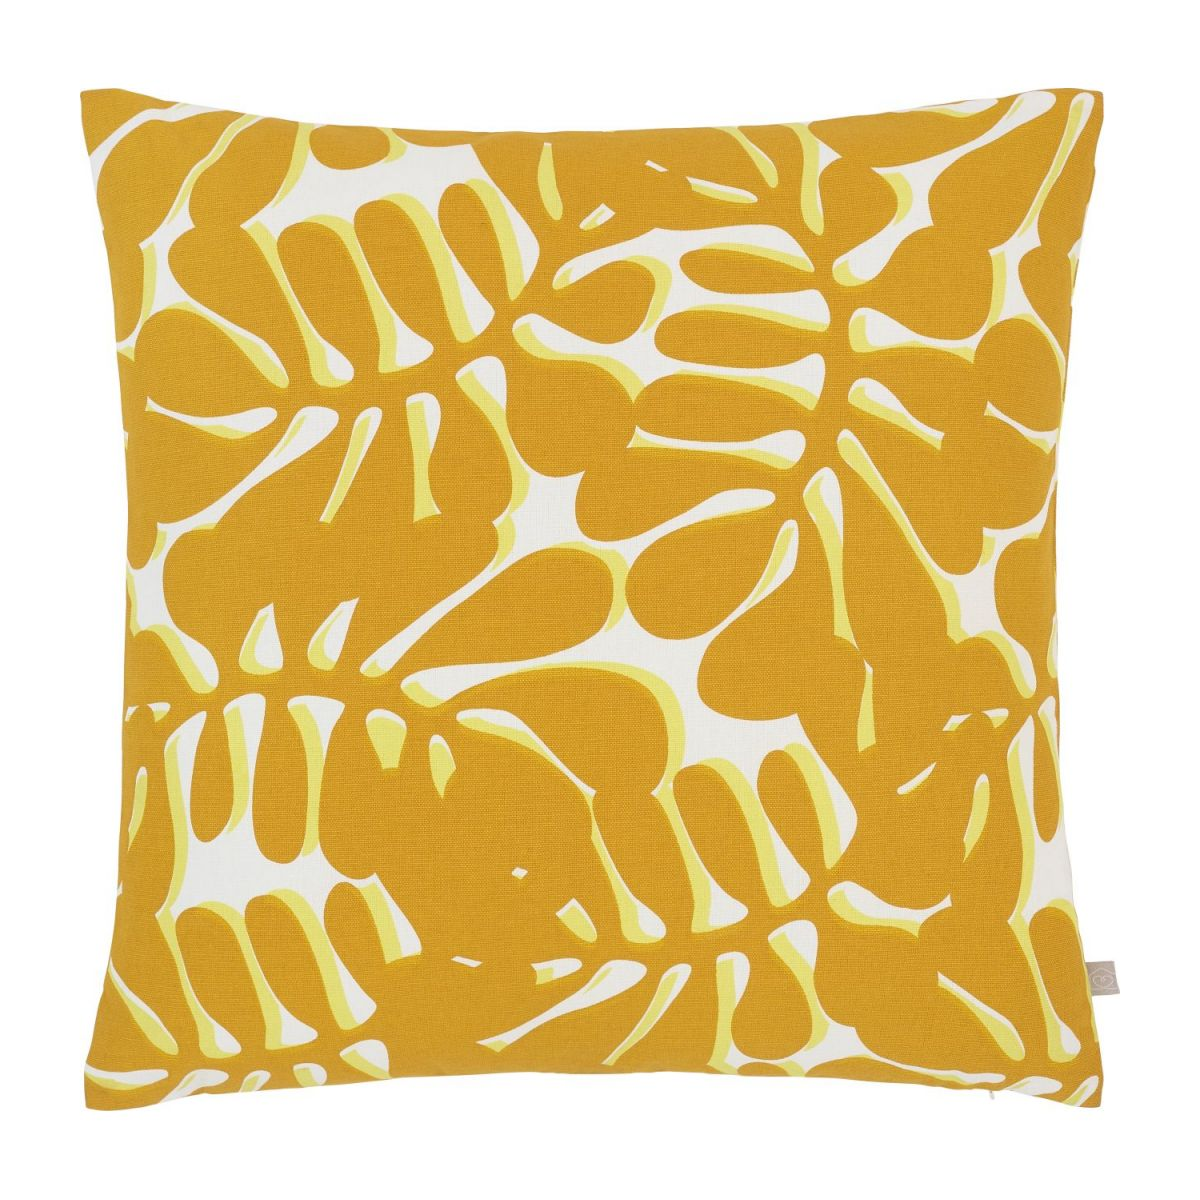 Cushion 45x45 with yellow patterns  n°1